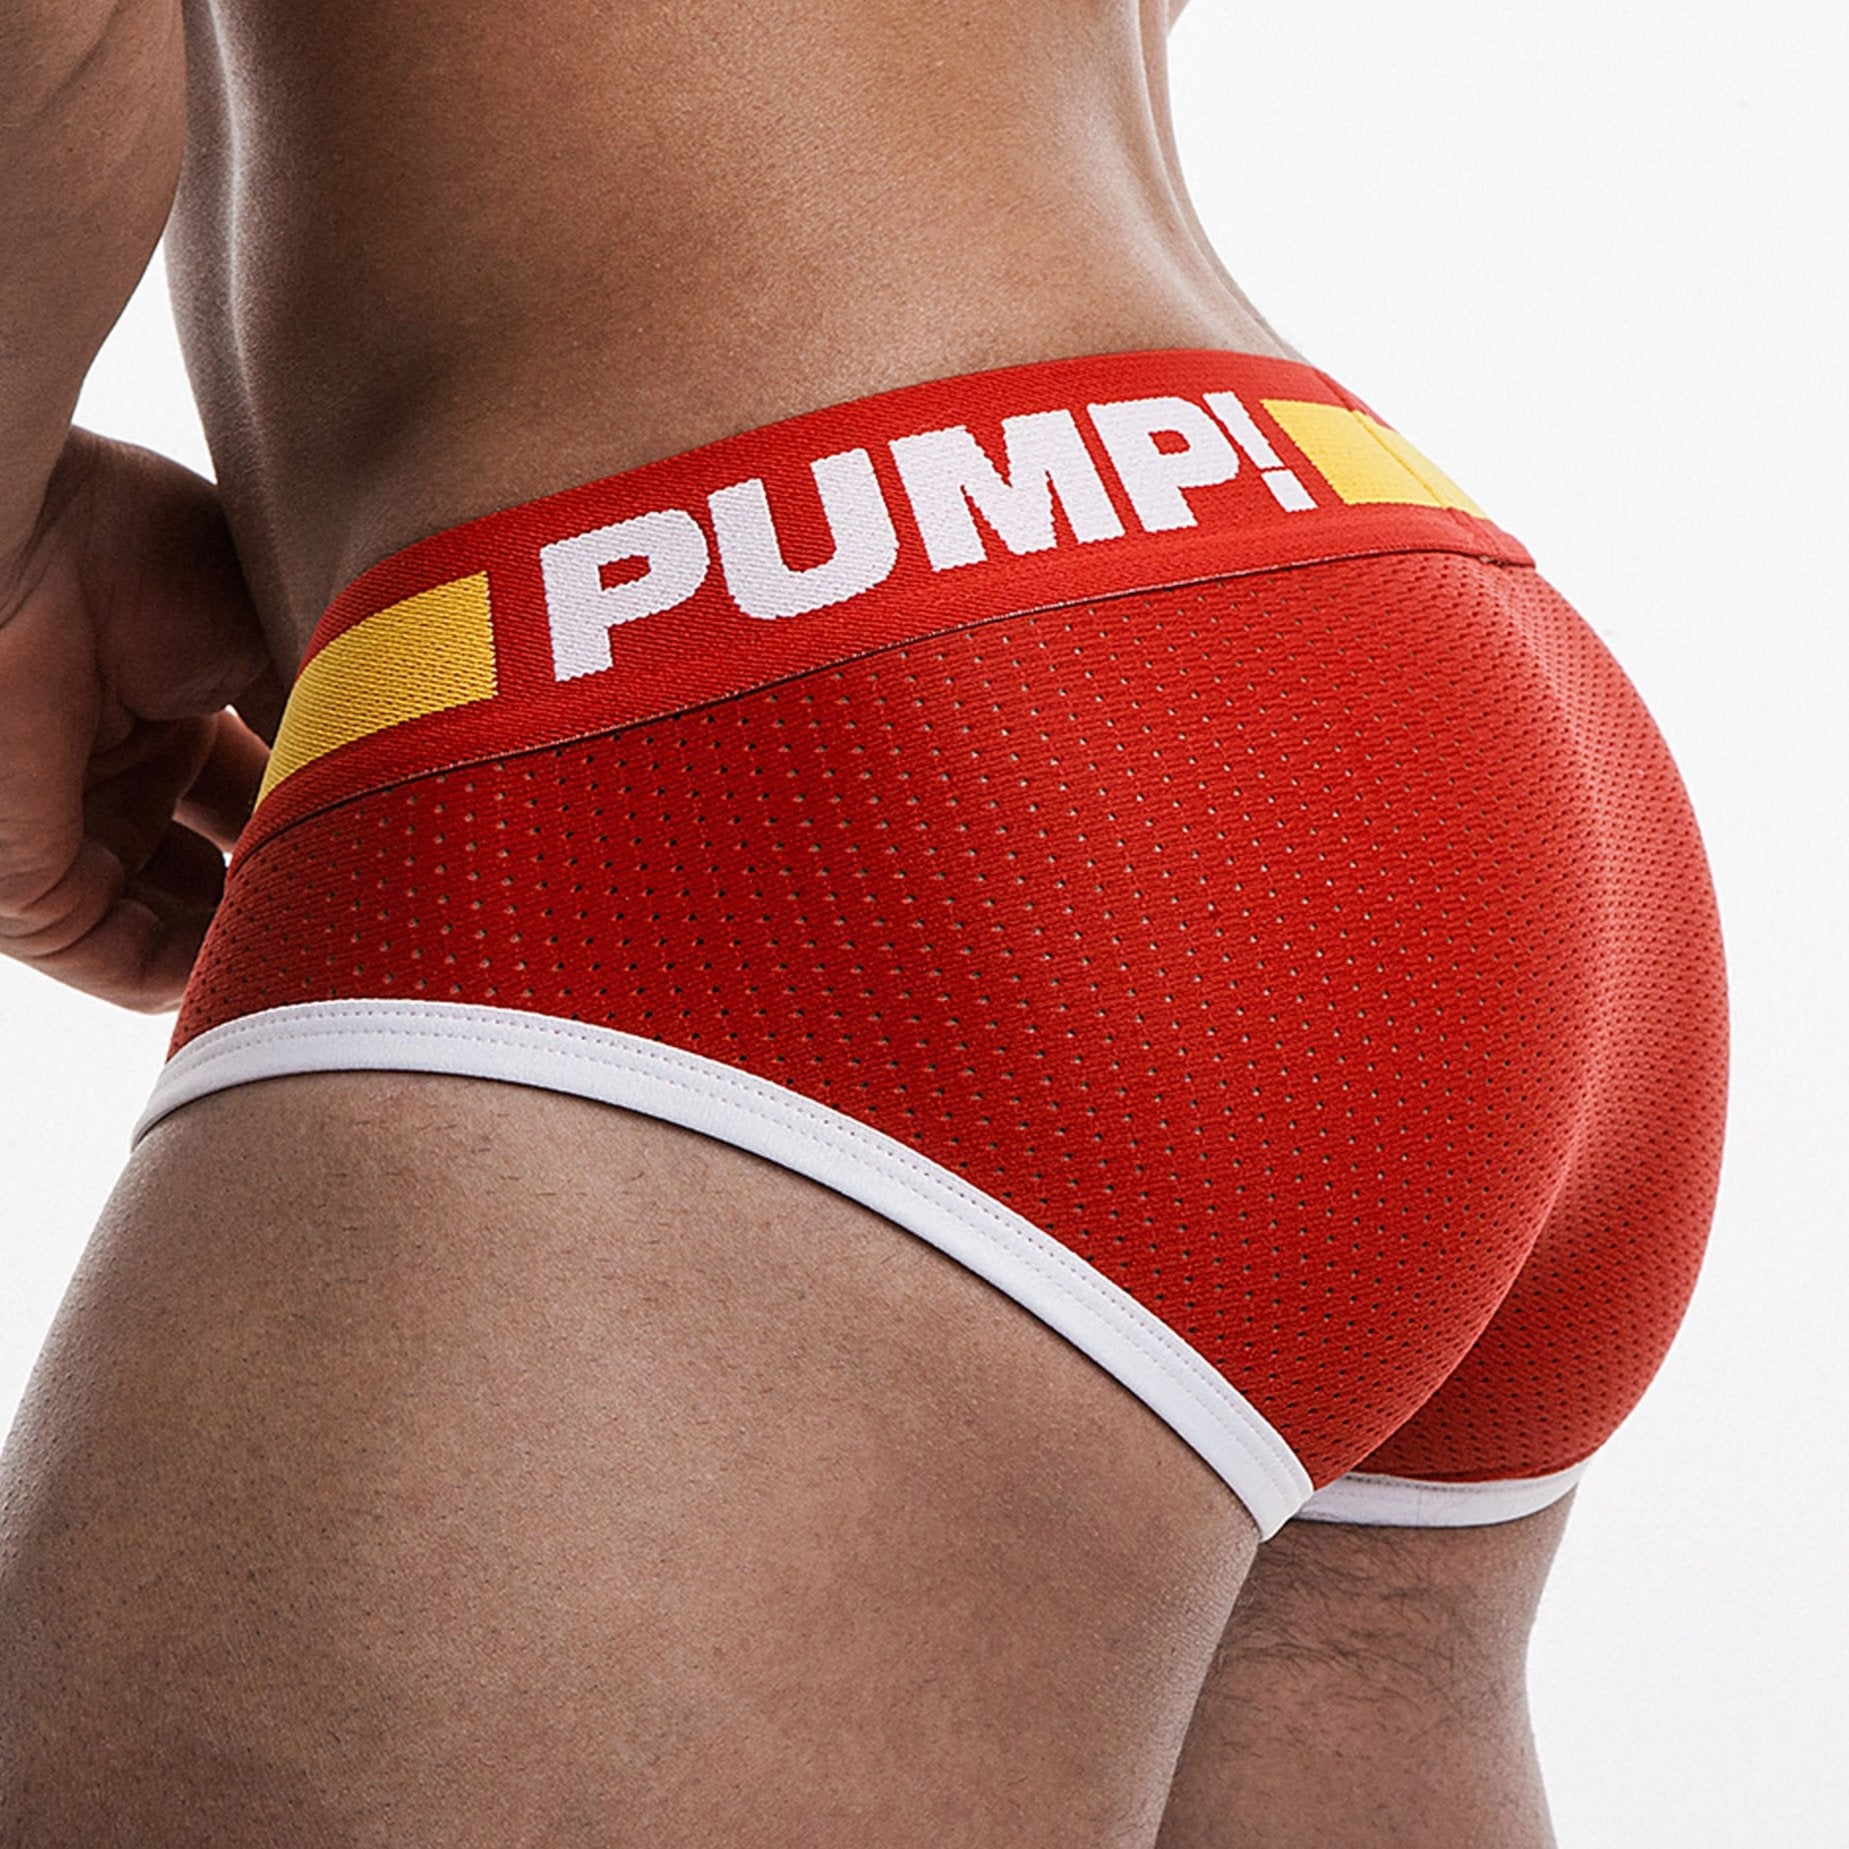 Flash Brief - Red - PUMP! - trender-wear.myshopify.com